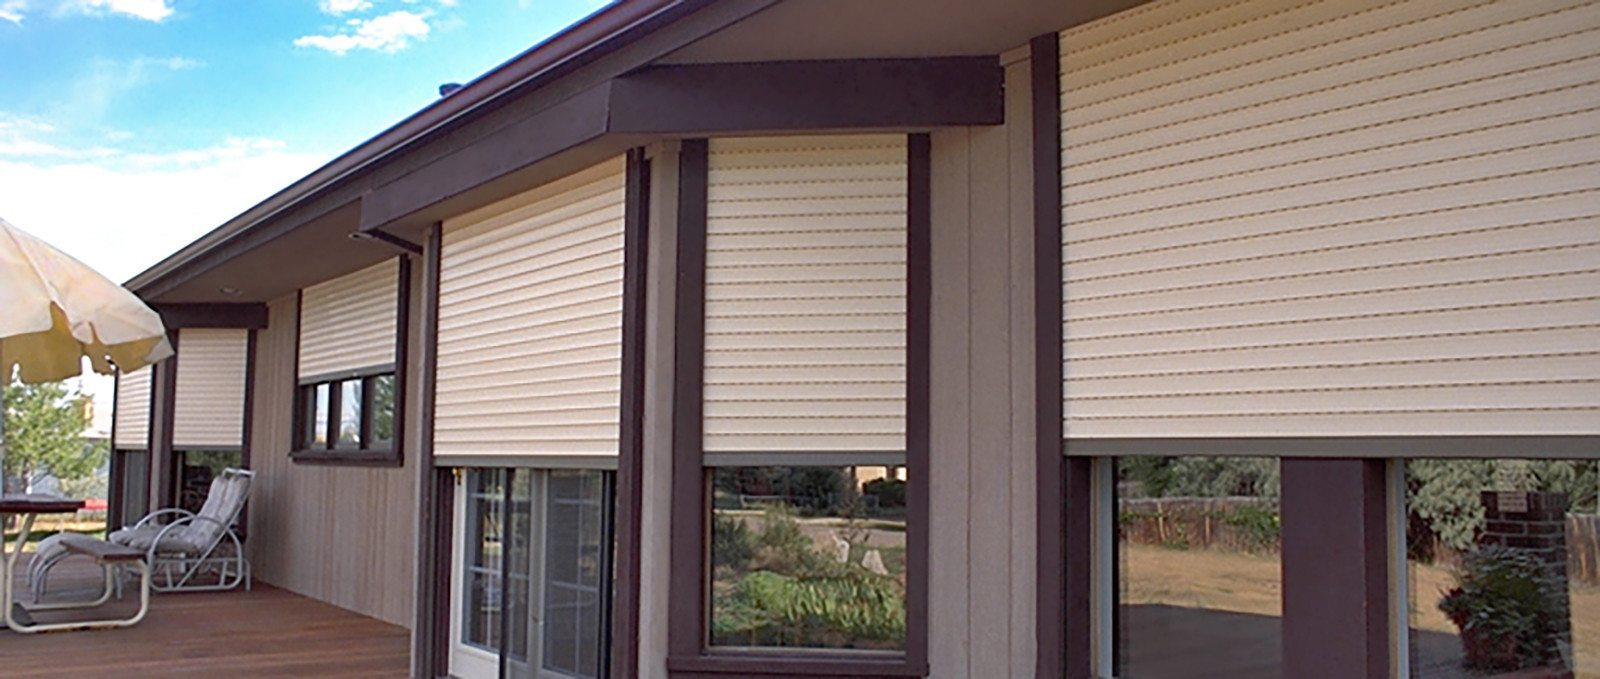 Exterior Rolling Shutters | Innovative Openings for Window Coverings Outside  lp4eri